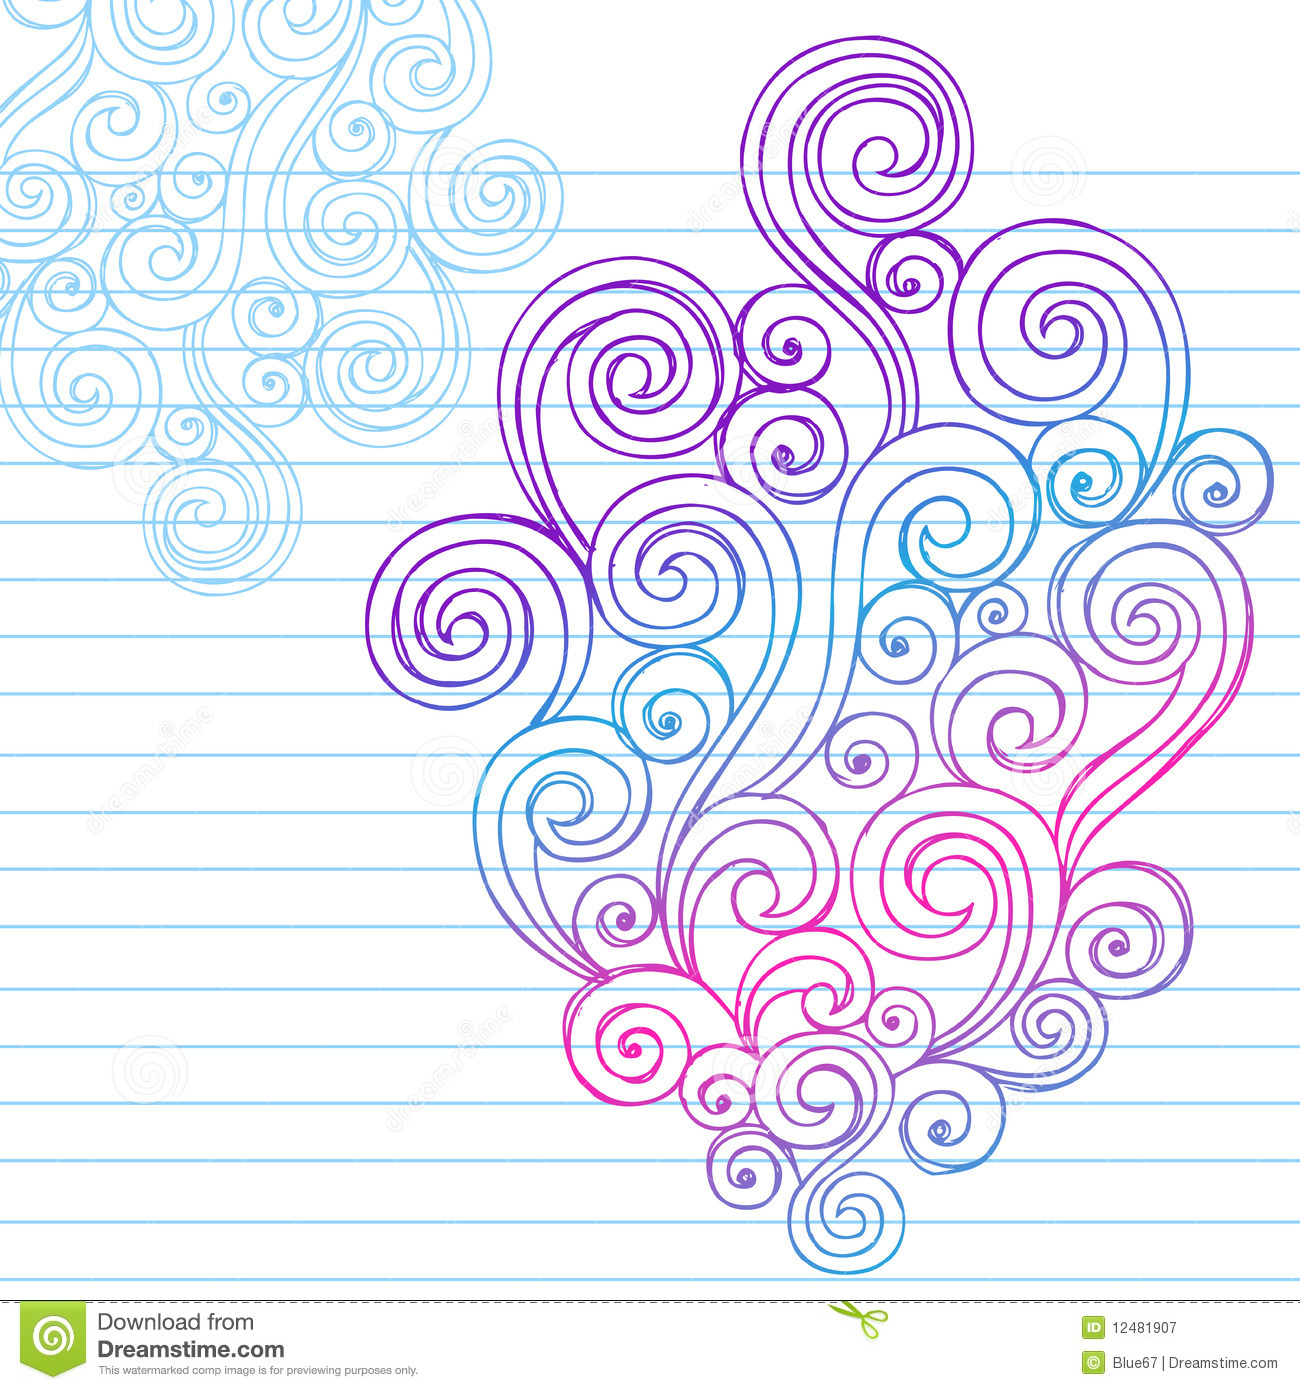 Hand Drawn Abstract Sketchy Swirl Doodles Royalty Free Stock Photography Image 12481907